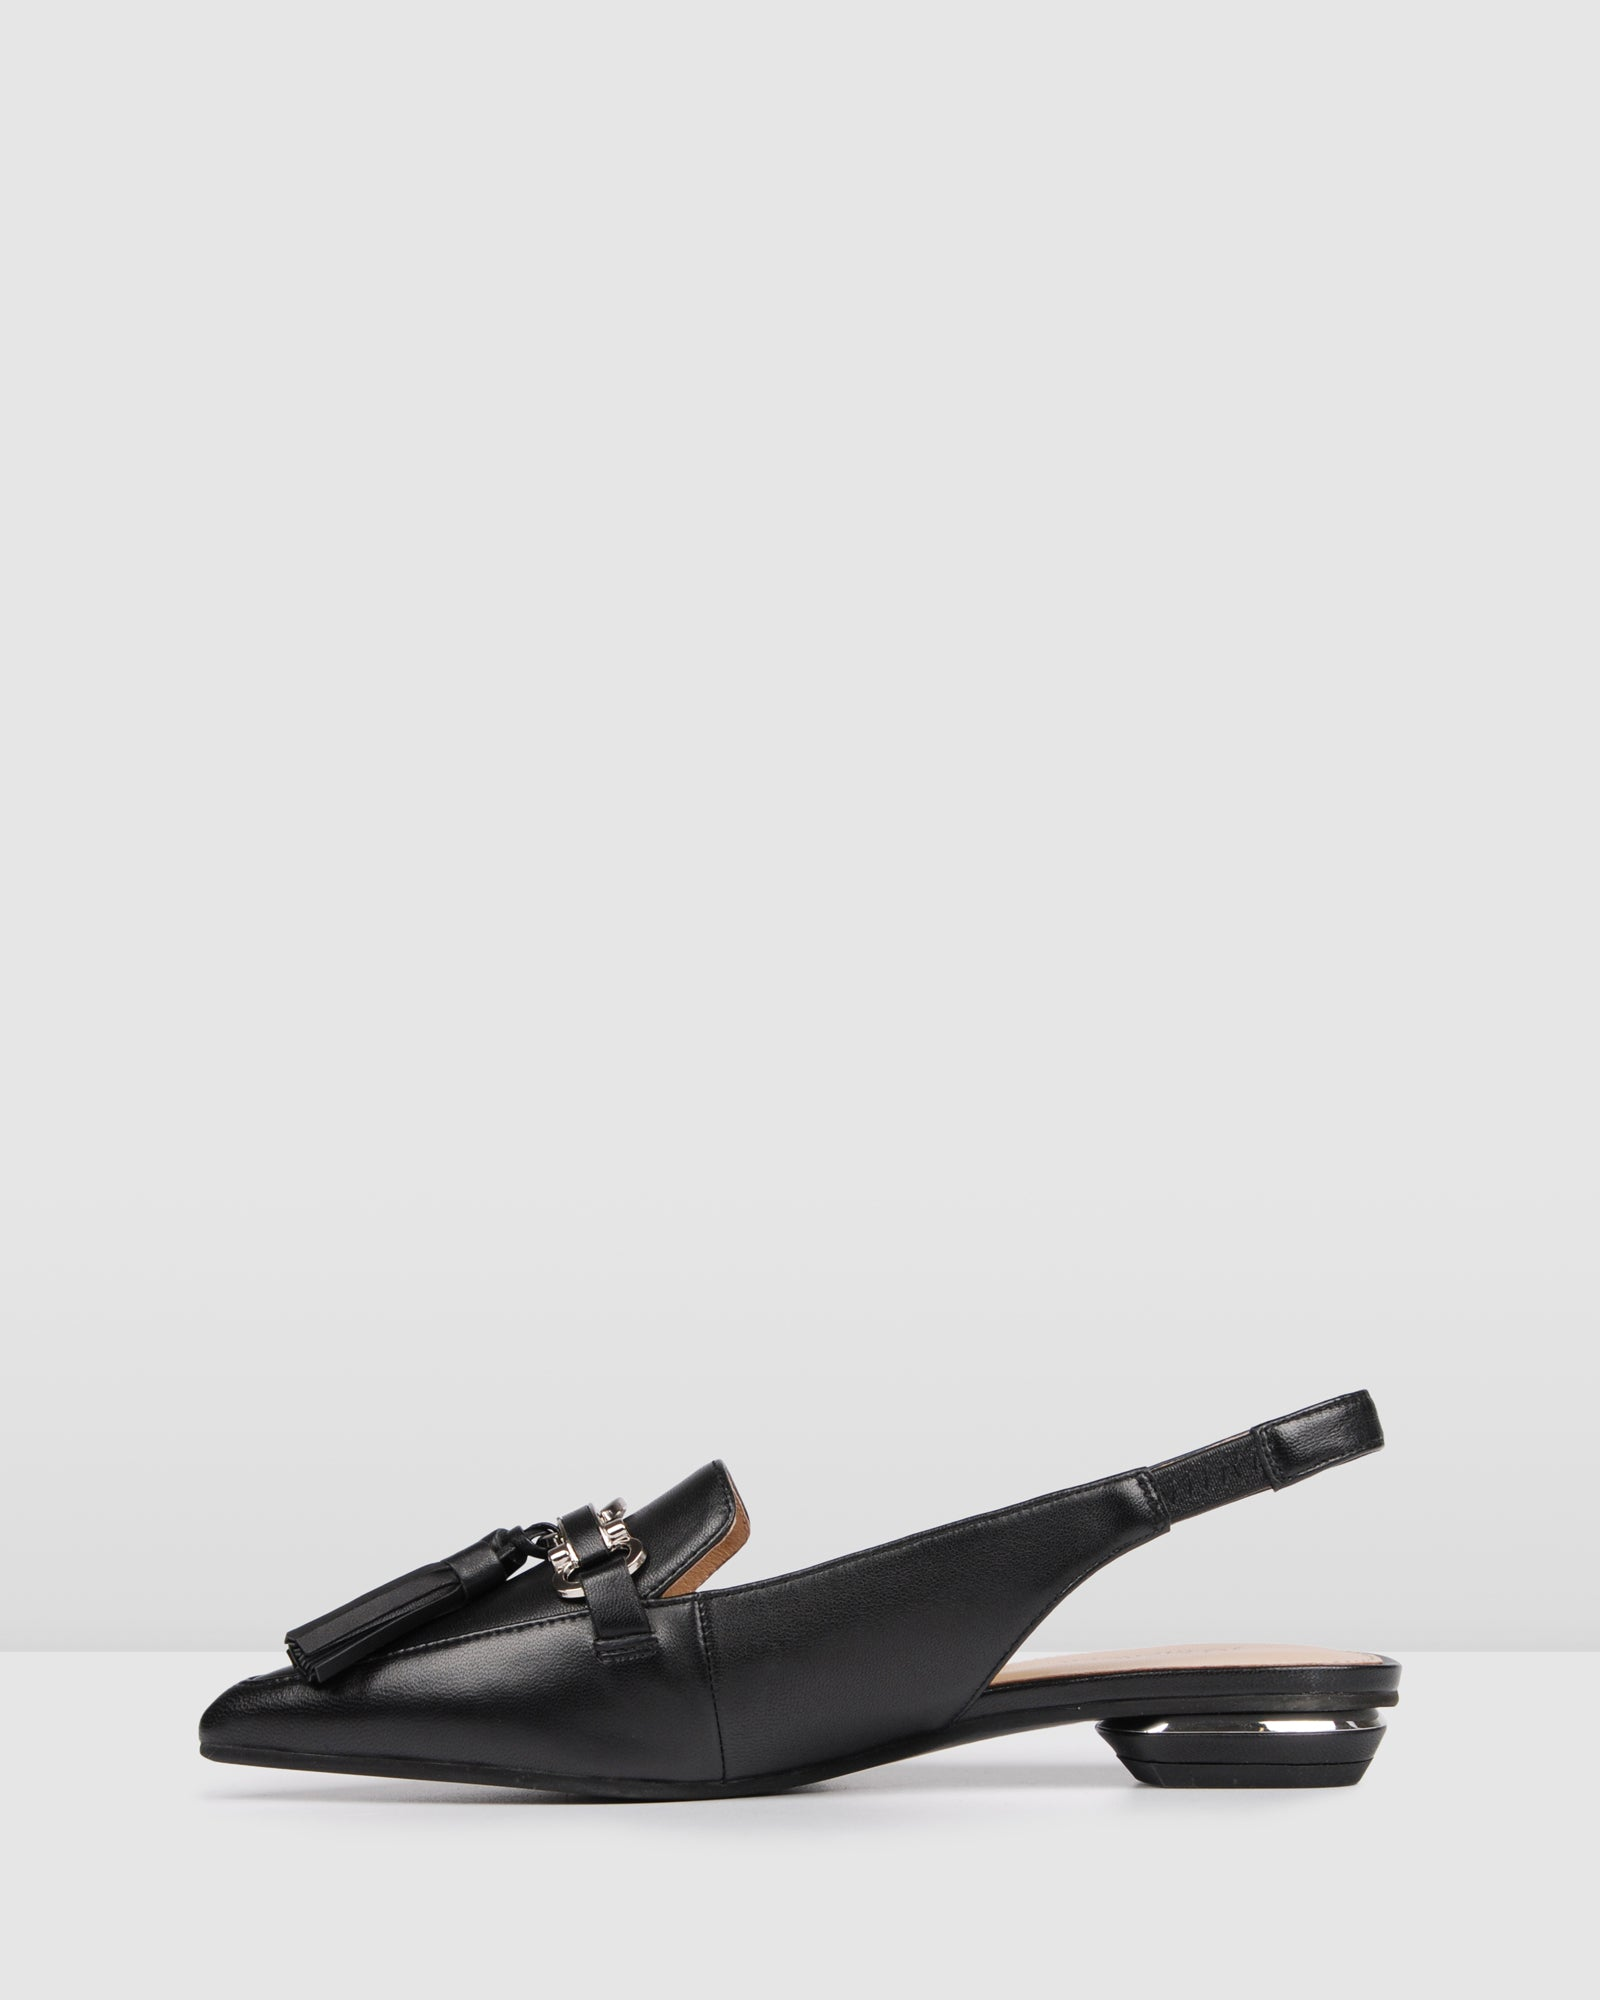 CLARITY DRESS FLATS BLACK LEATHER